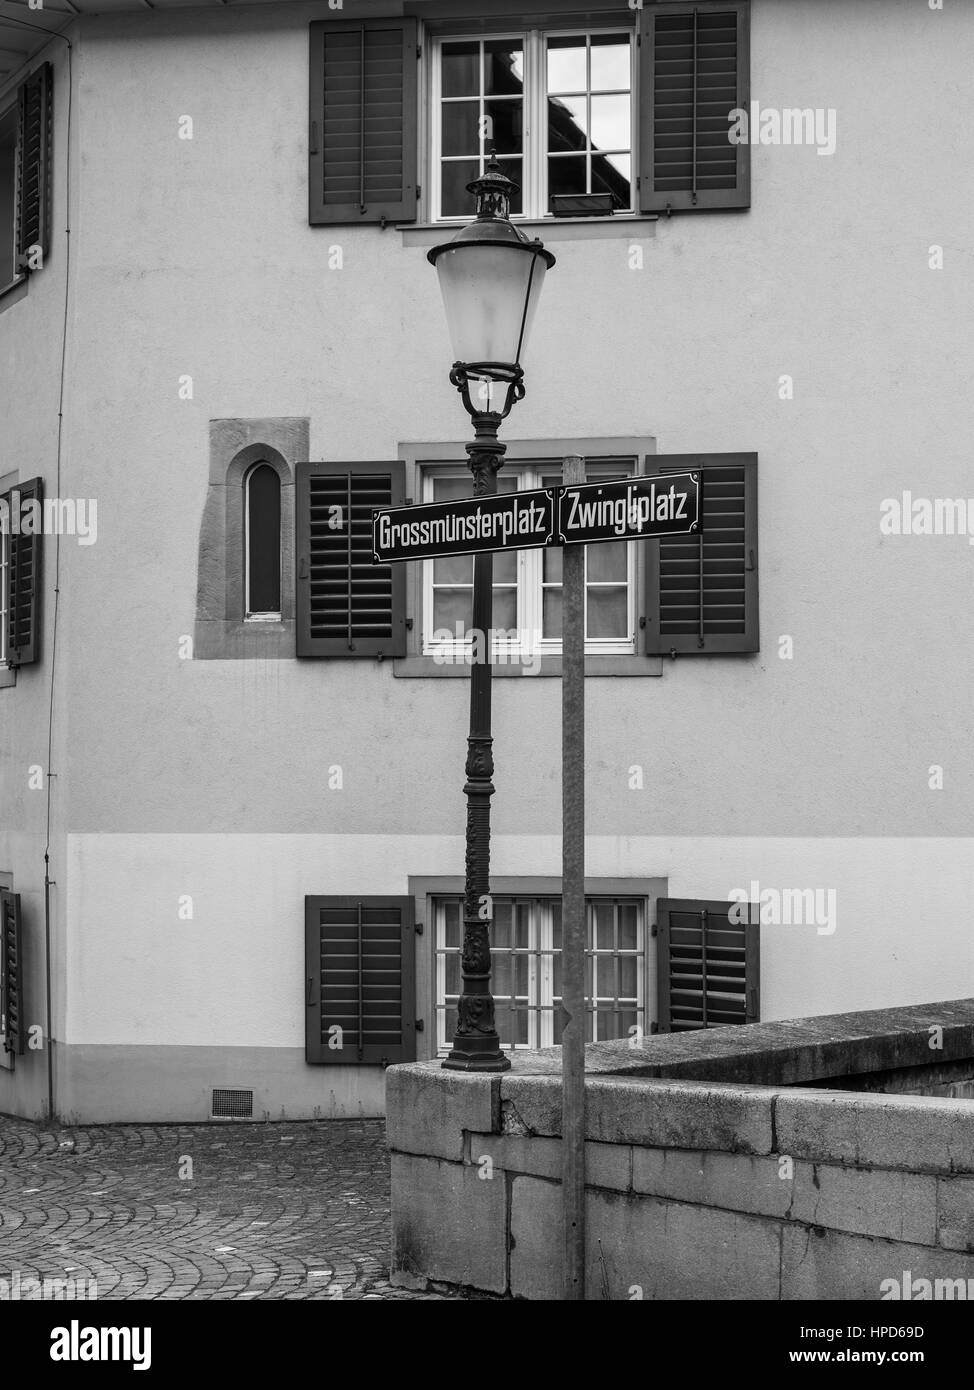 Grossmunsterplatz and Zwingliplatz street signs in Zurich, Switzerland. Black and white photography. - Stock Image